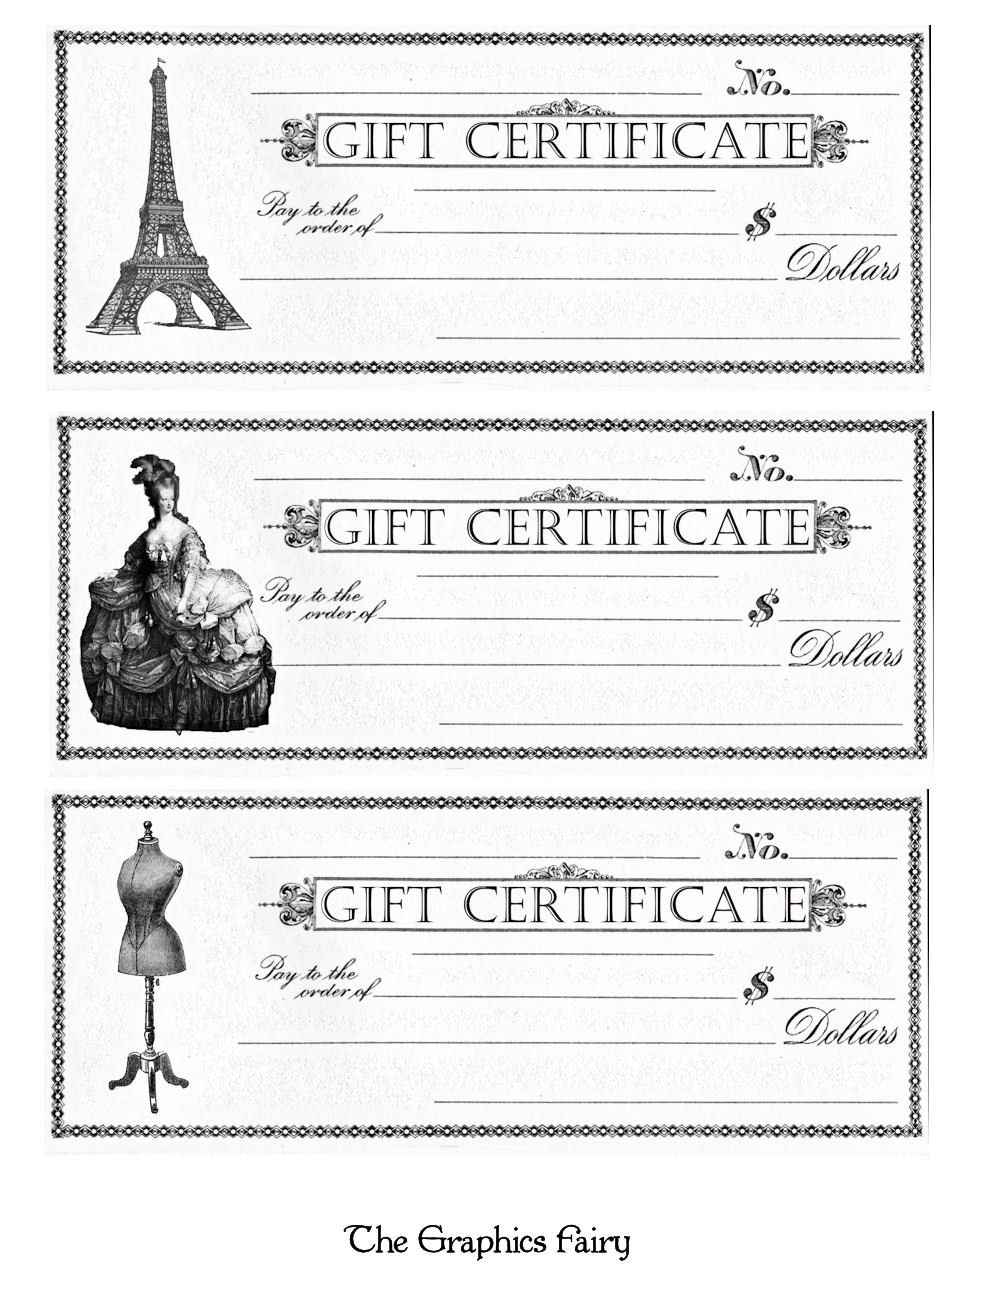 Free printable gift certificates the graphics fairy for Homemade christmas gift certificates templates